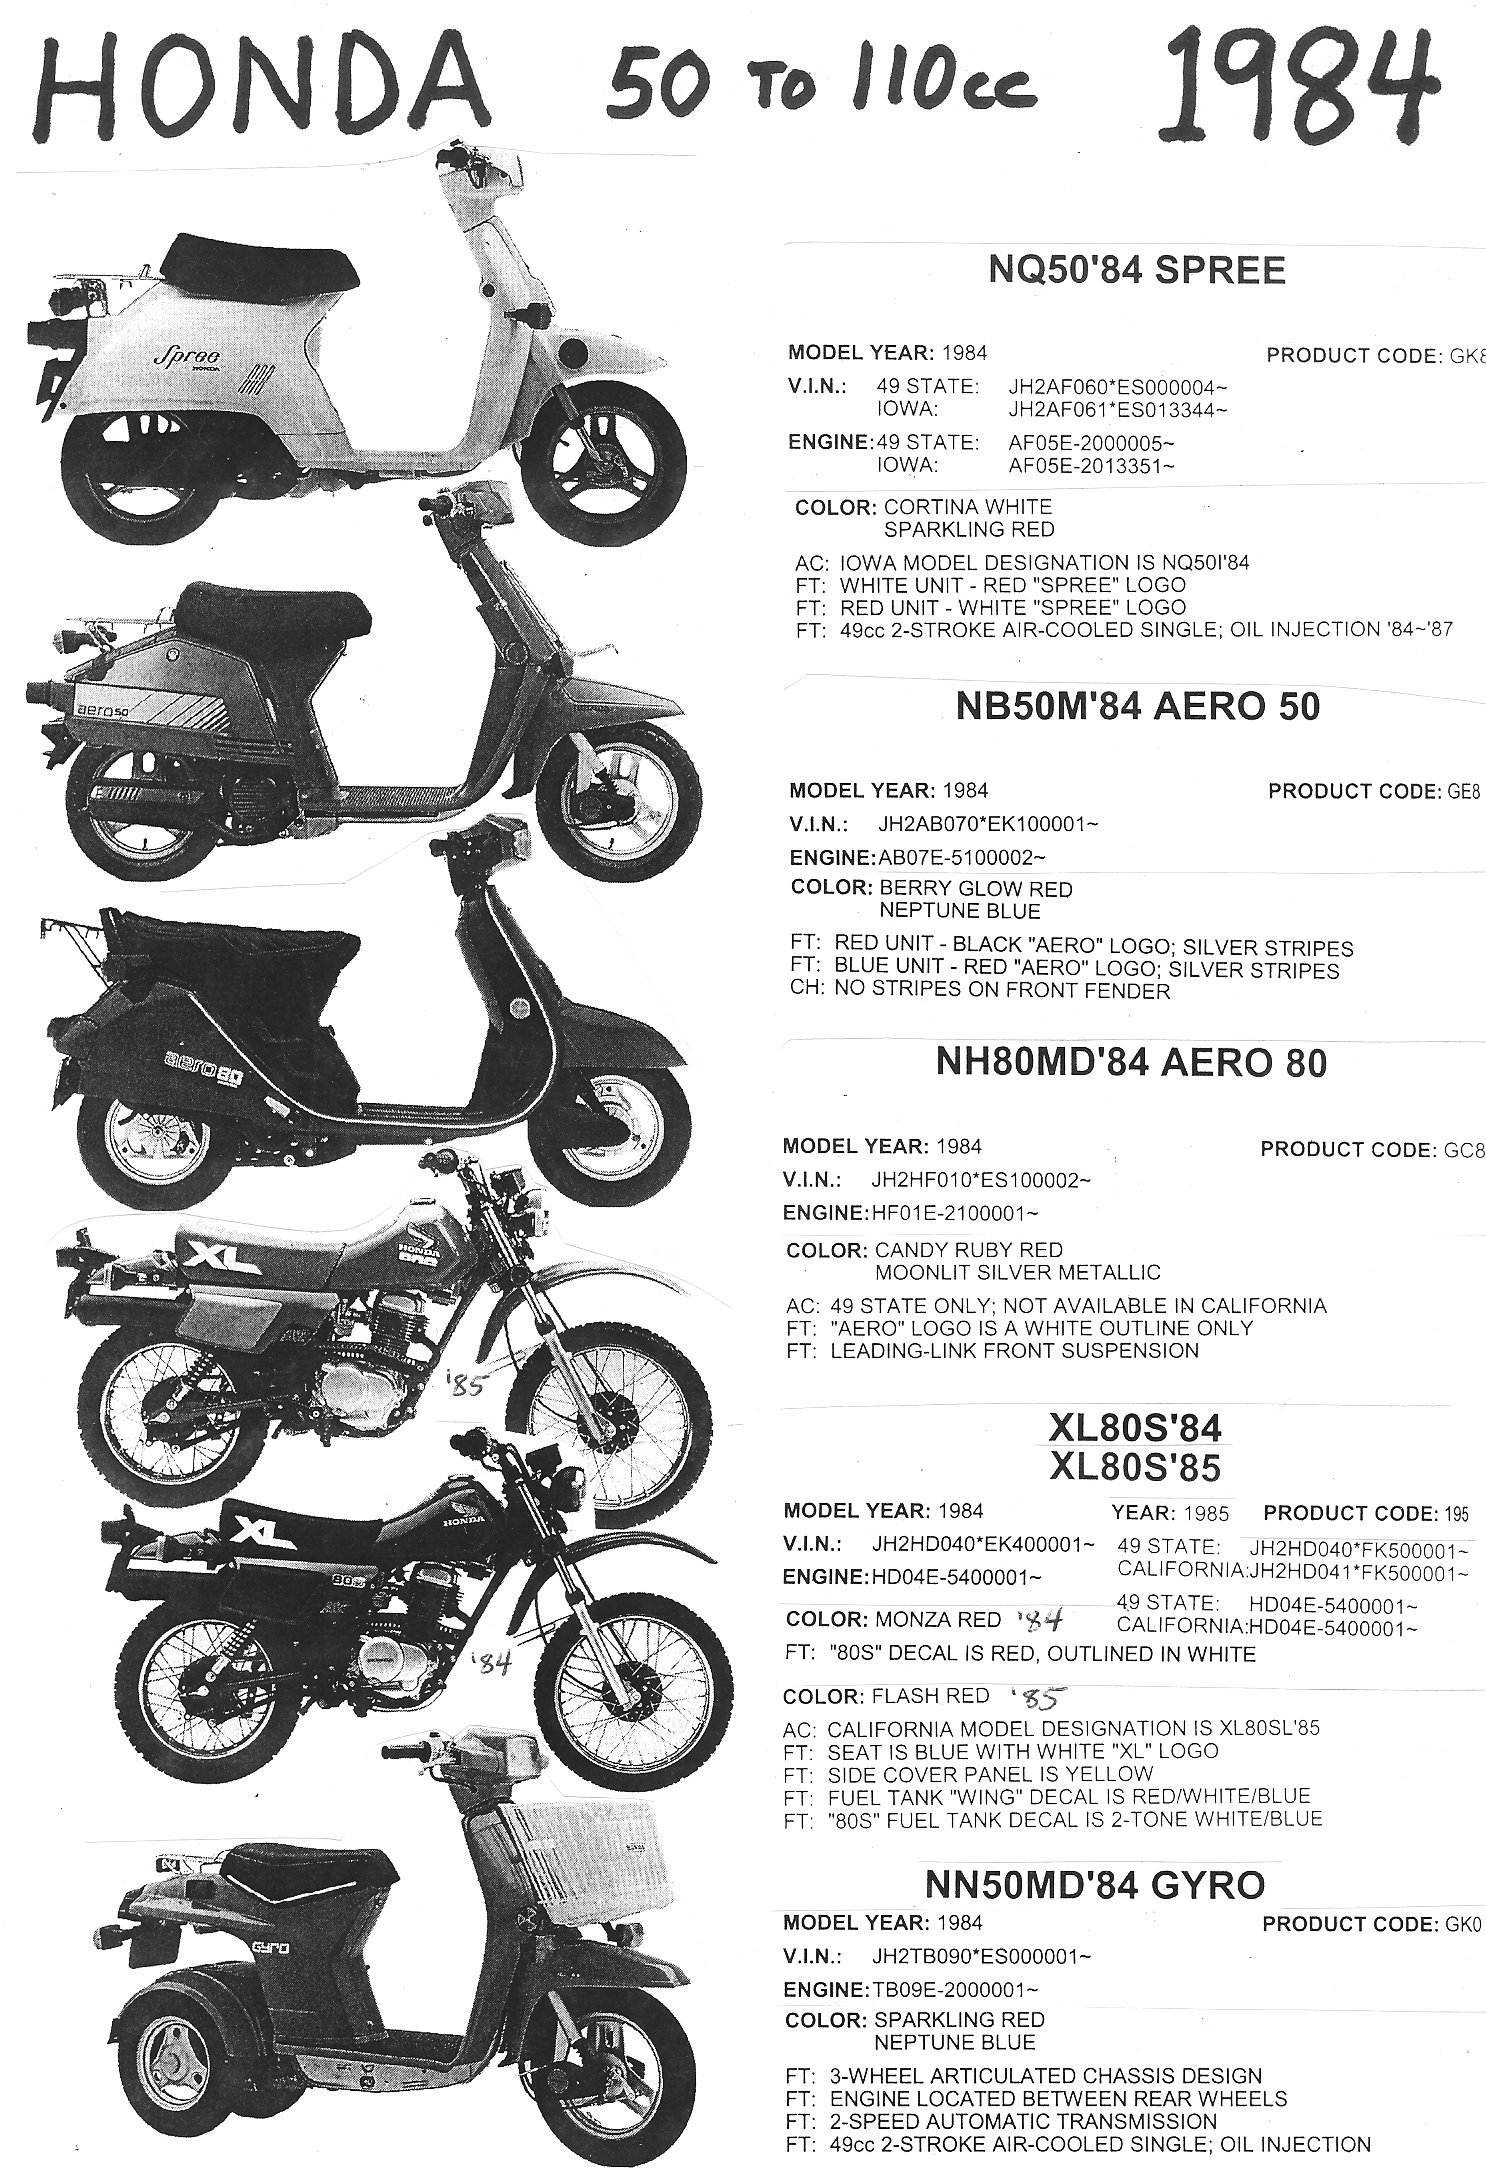 1984 Honda Spree Wiring Diagram Library 49cc 2 Stroke Scooter Diagrams Extraordinary Images Best Image Vt700c